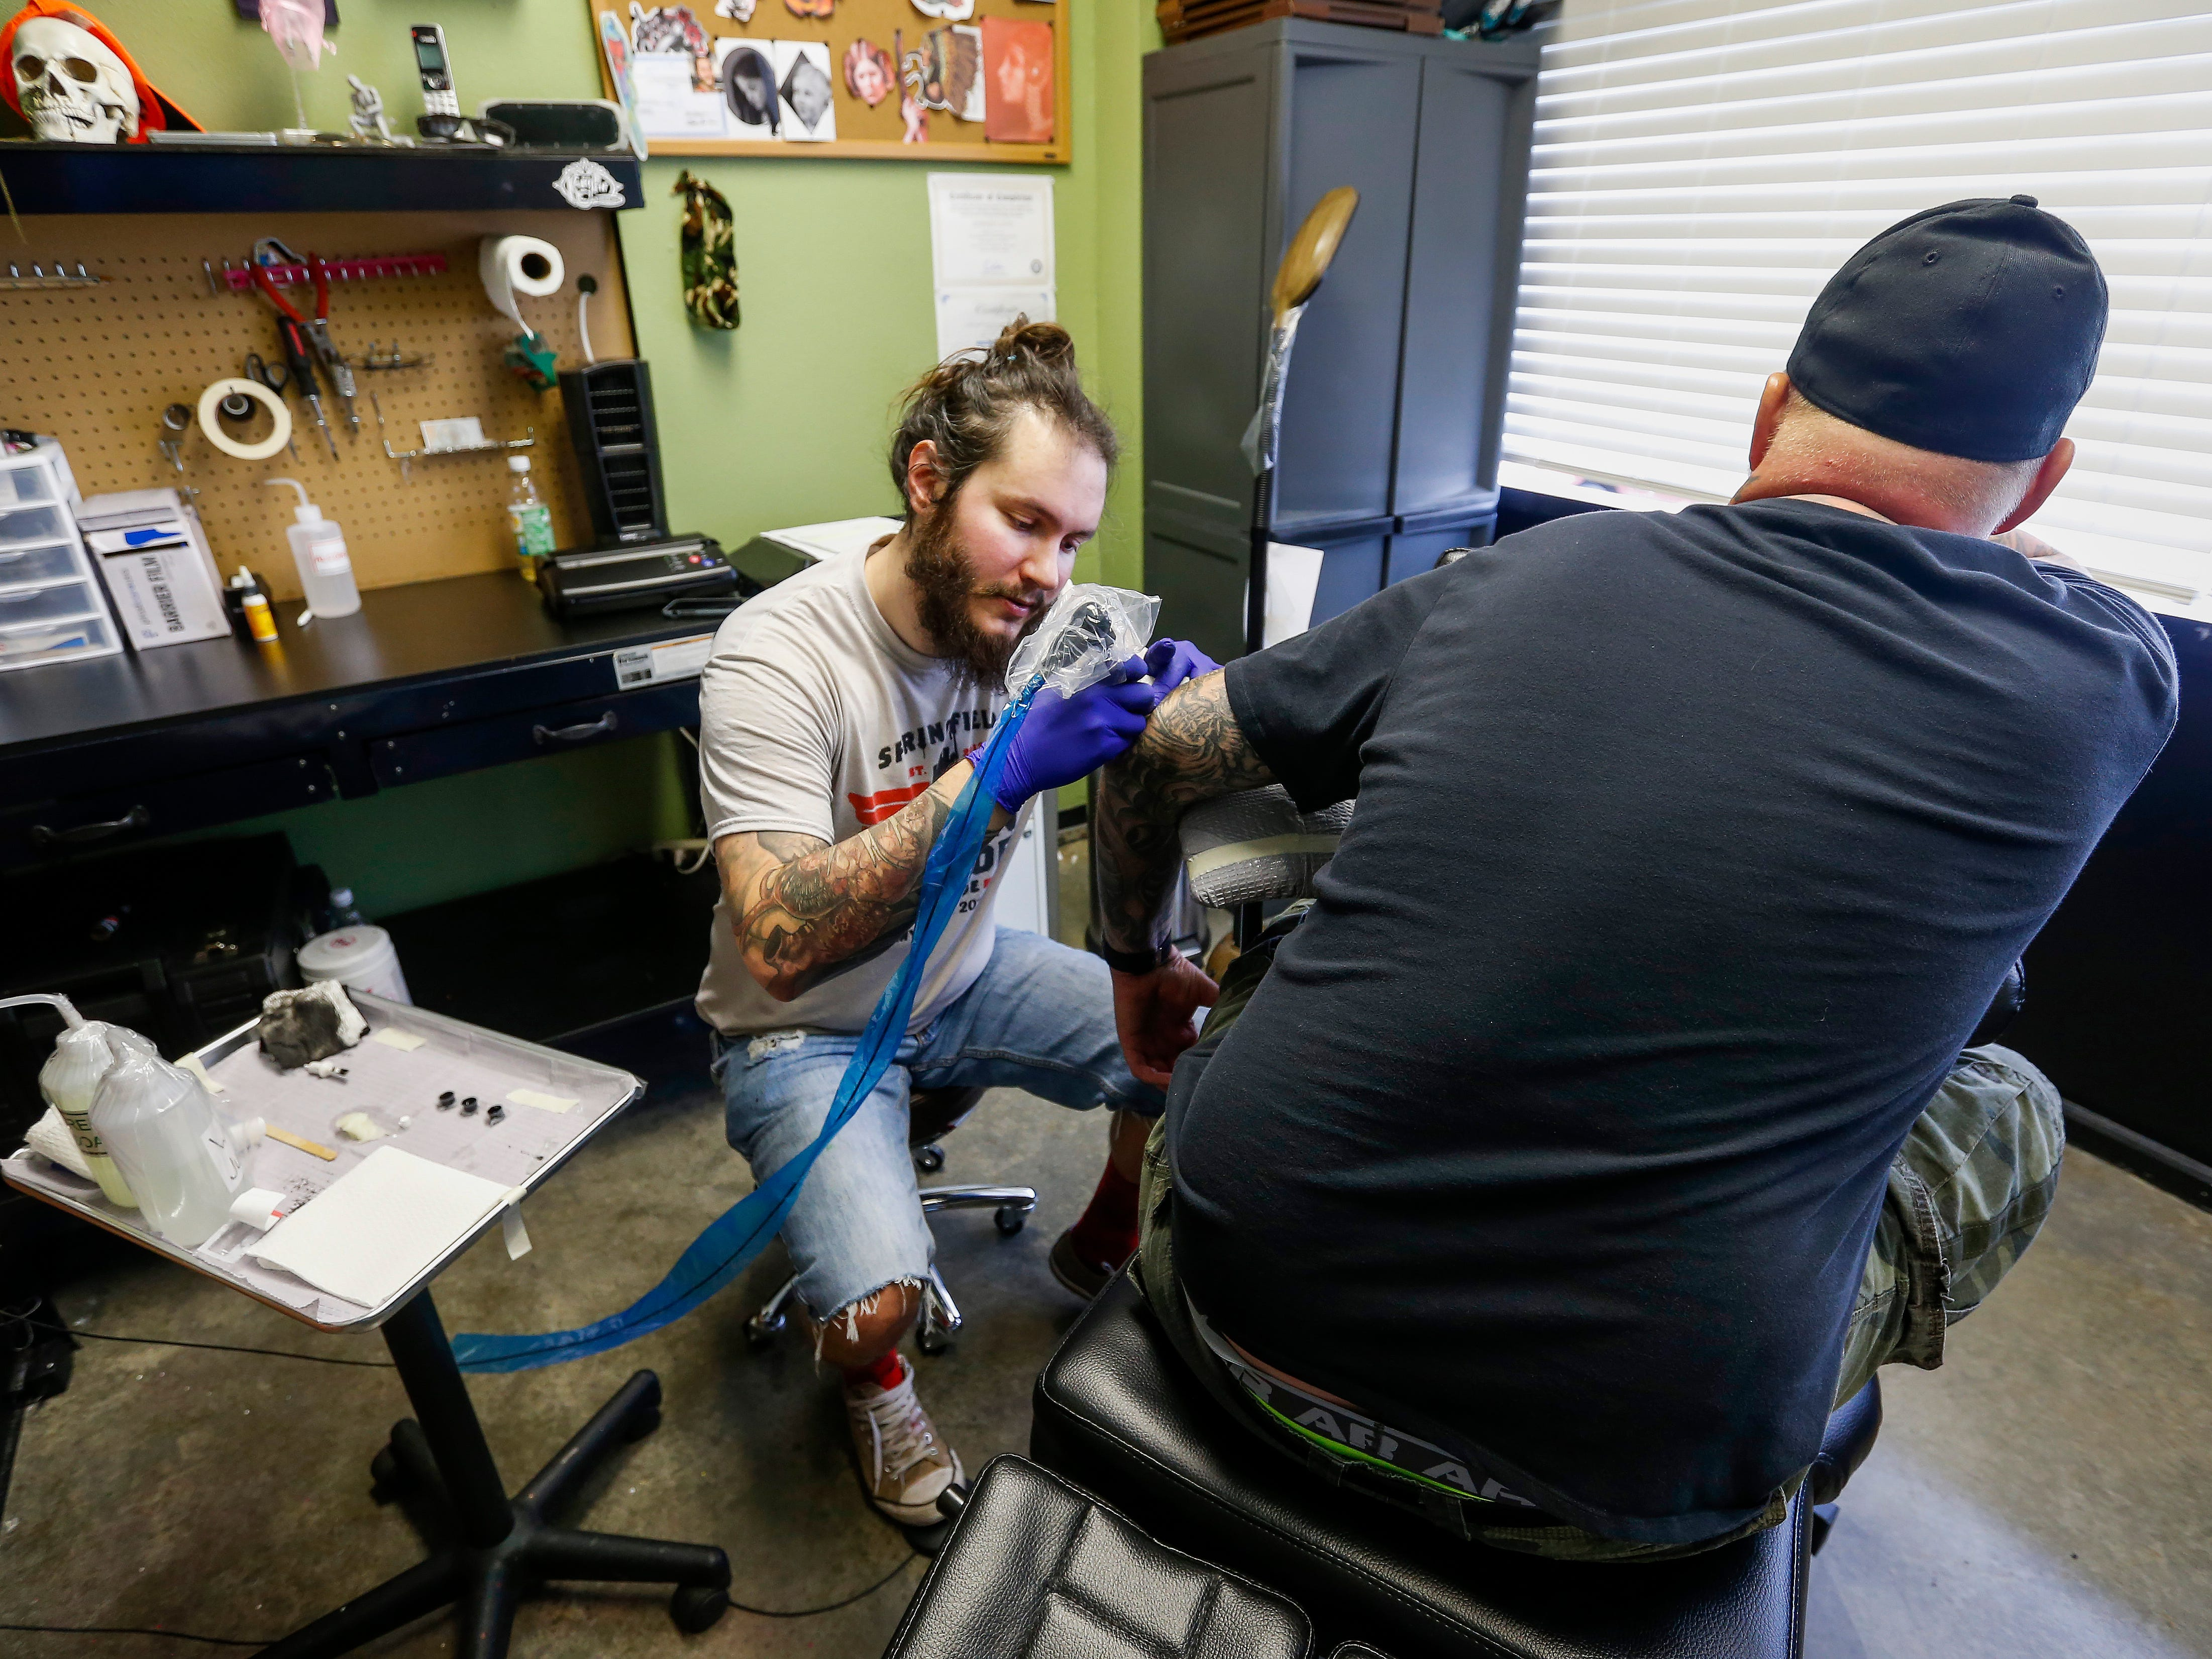 Justin Fleetwood, at tattoo artist at Queen City Tattoo Company, covers up a swastika tattoo on the elbow of a man who wished not to be identified on Tuesday, Aug. 21, 2018. Fleetwood is offering to cover up people's hate-tattoos at no cost.